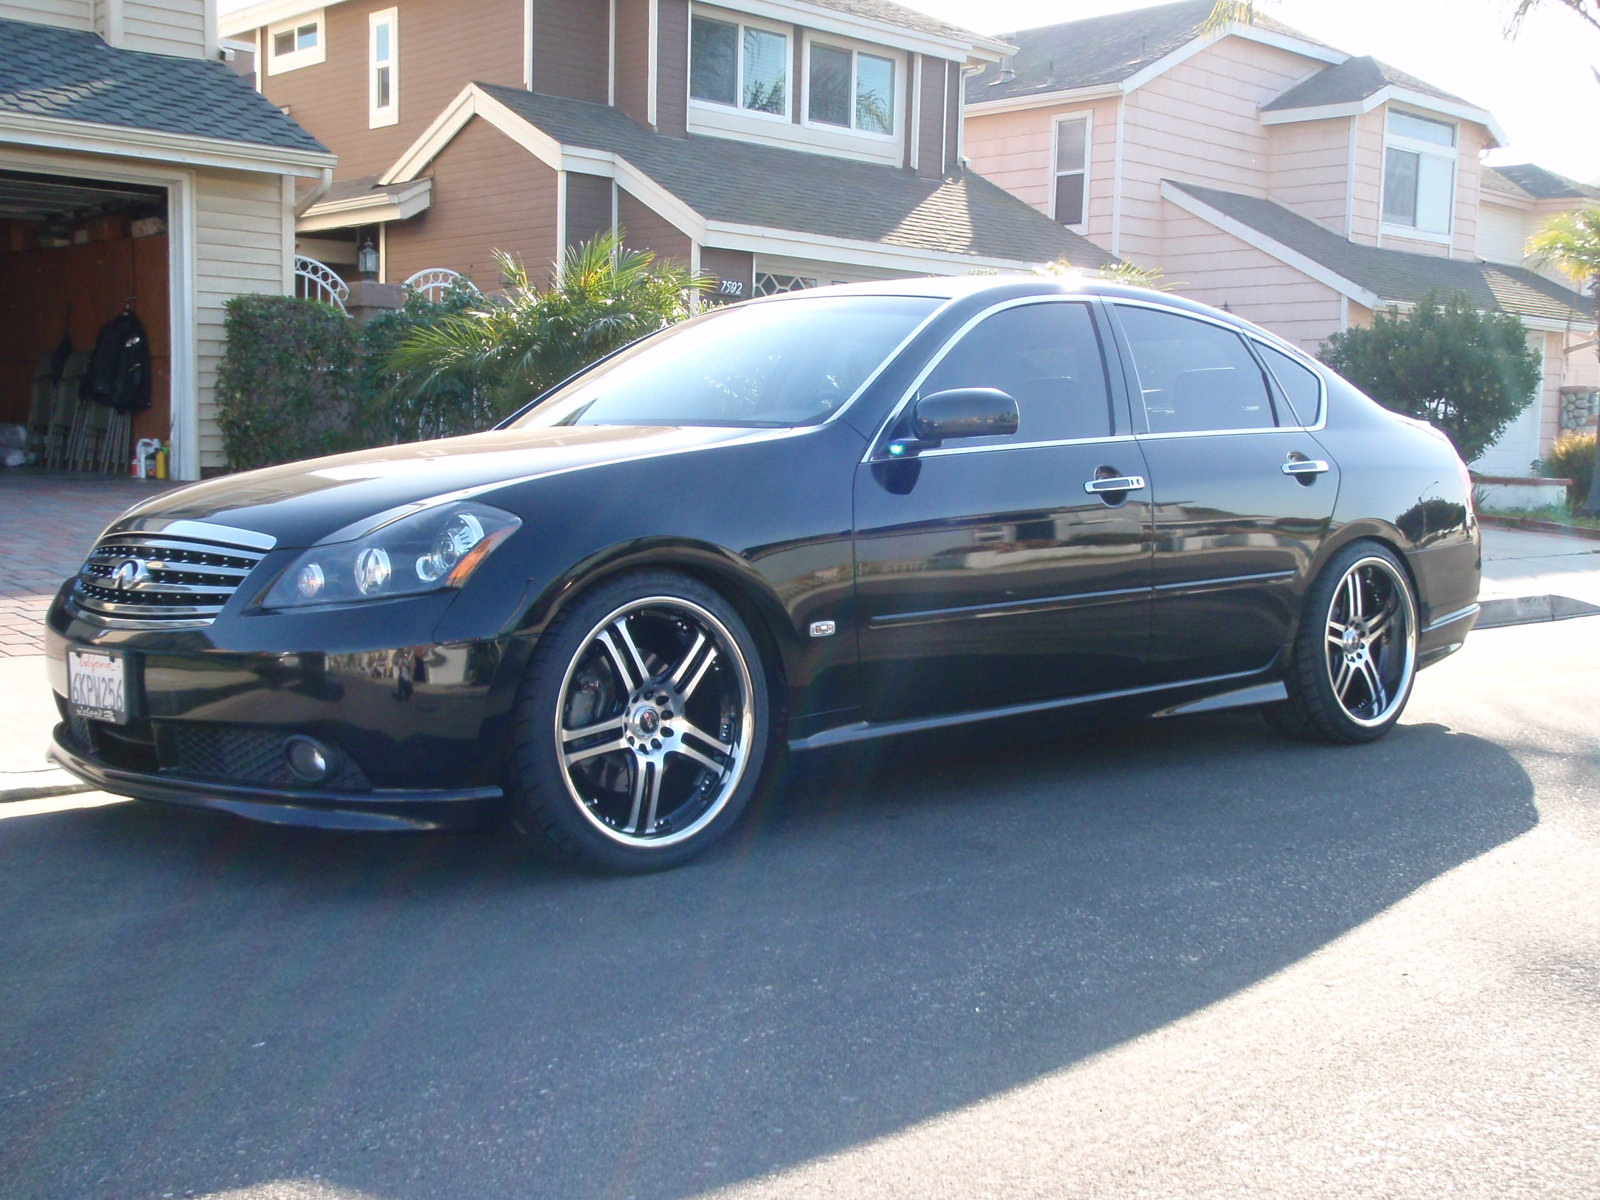 2006 infiniti m45 information and photos zombiedrive 2006 infiniti m45 19 infiniti m45 19 vanachro Choice Image